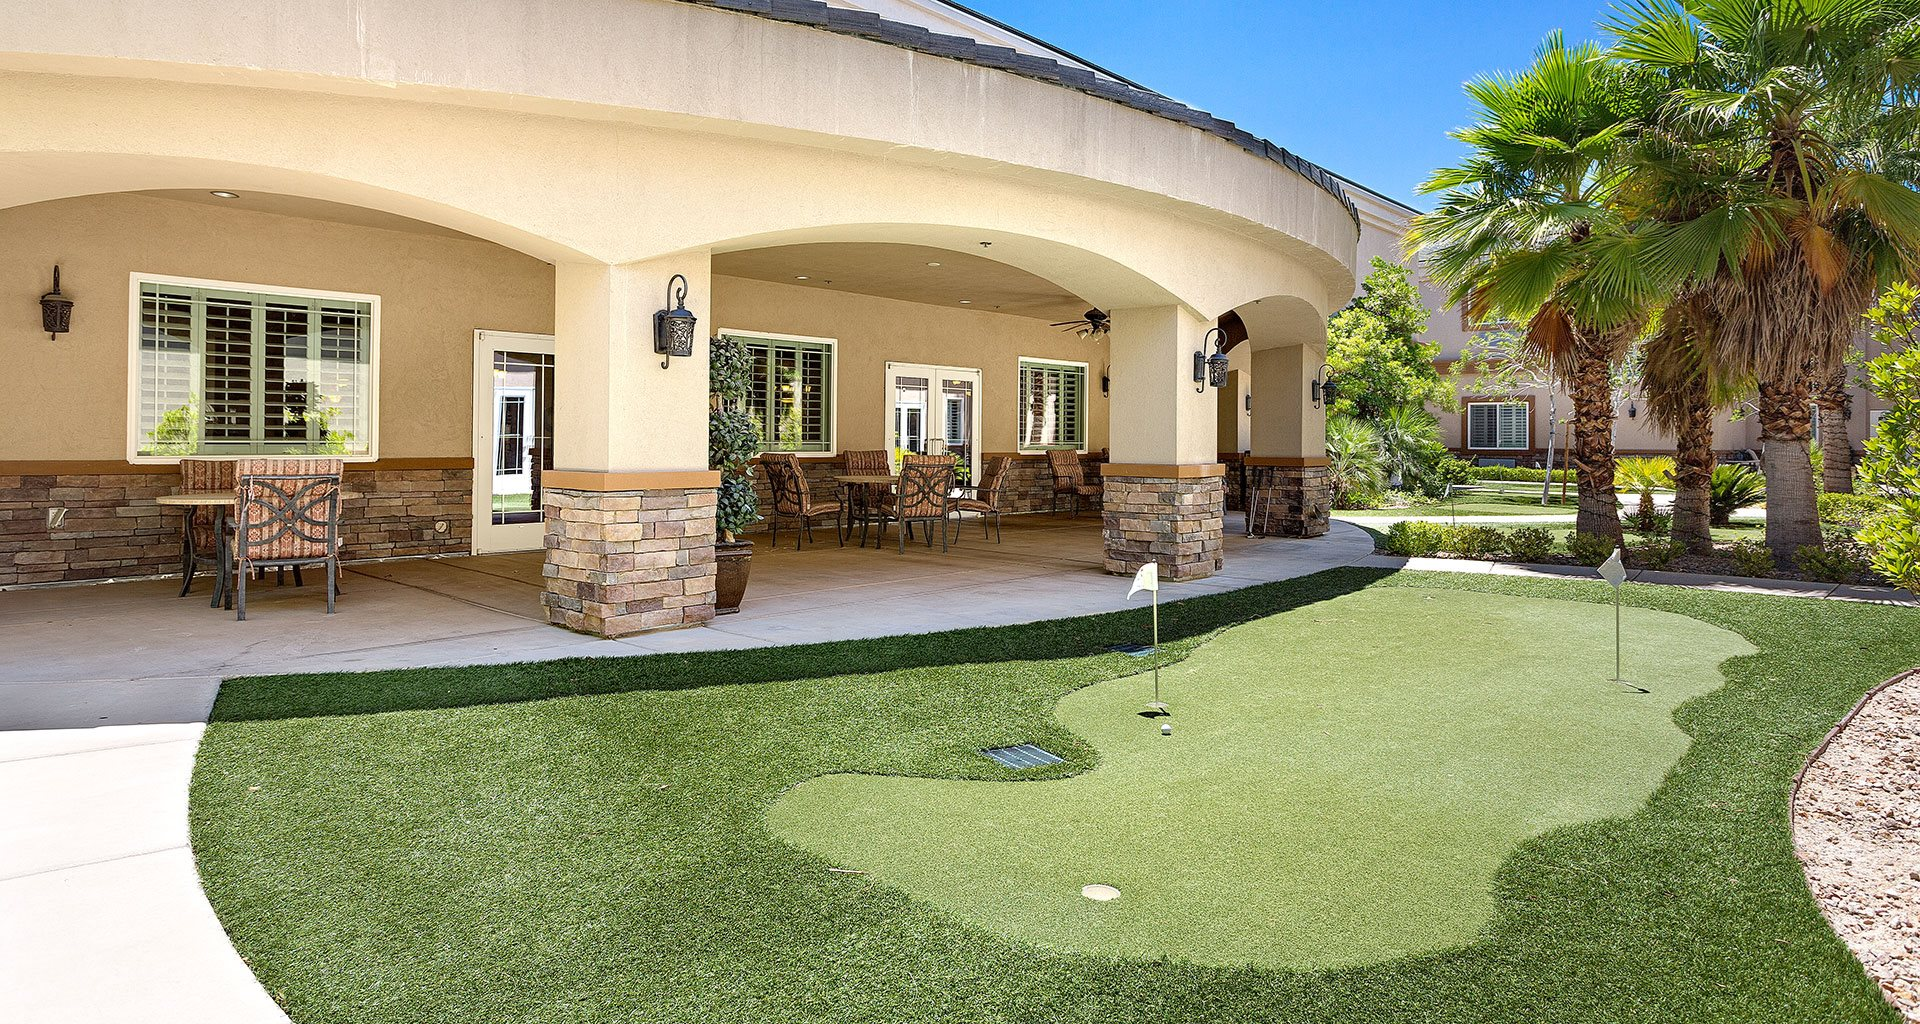 Courtyard With Green Space at Pacifica Senior Living San Martin, Nevada, 89113